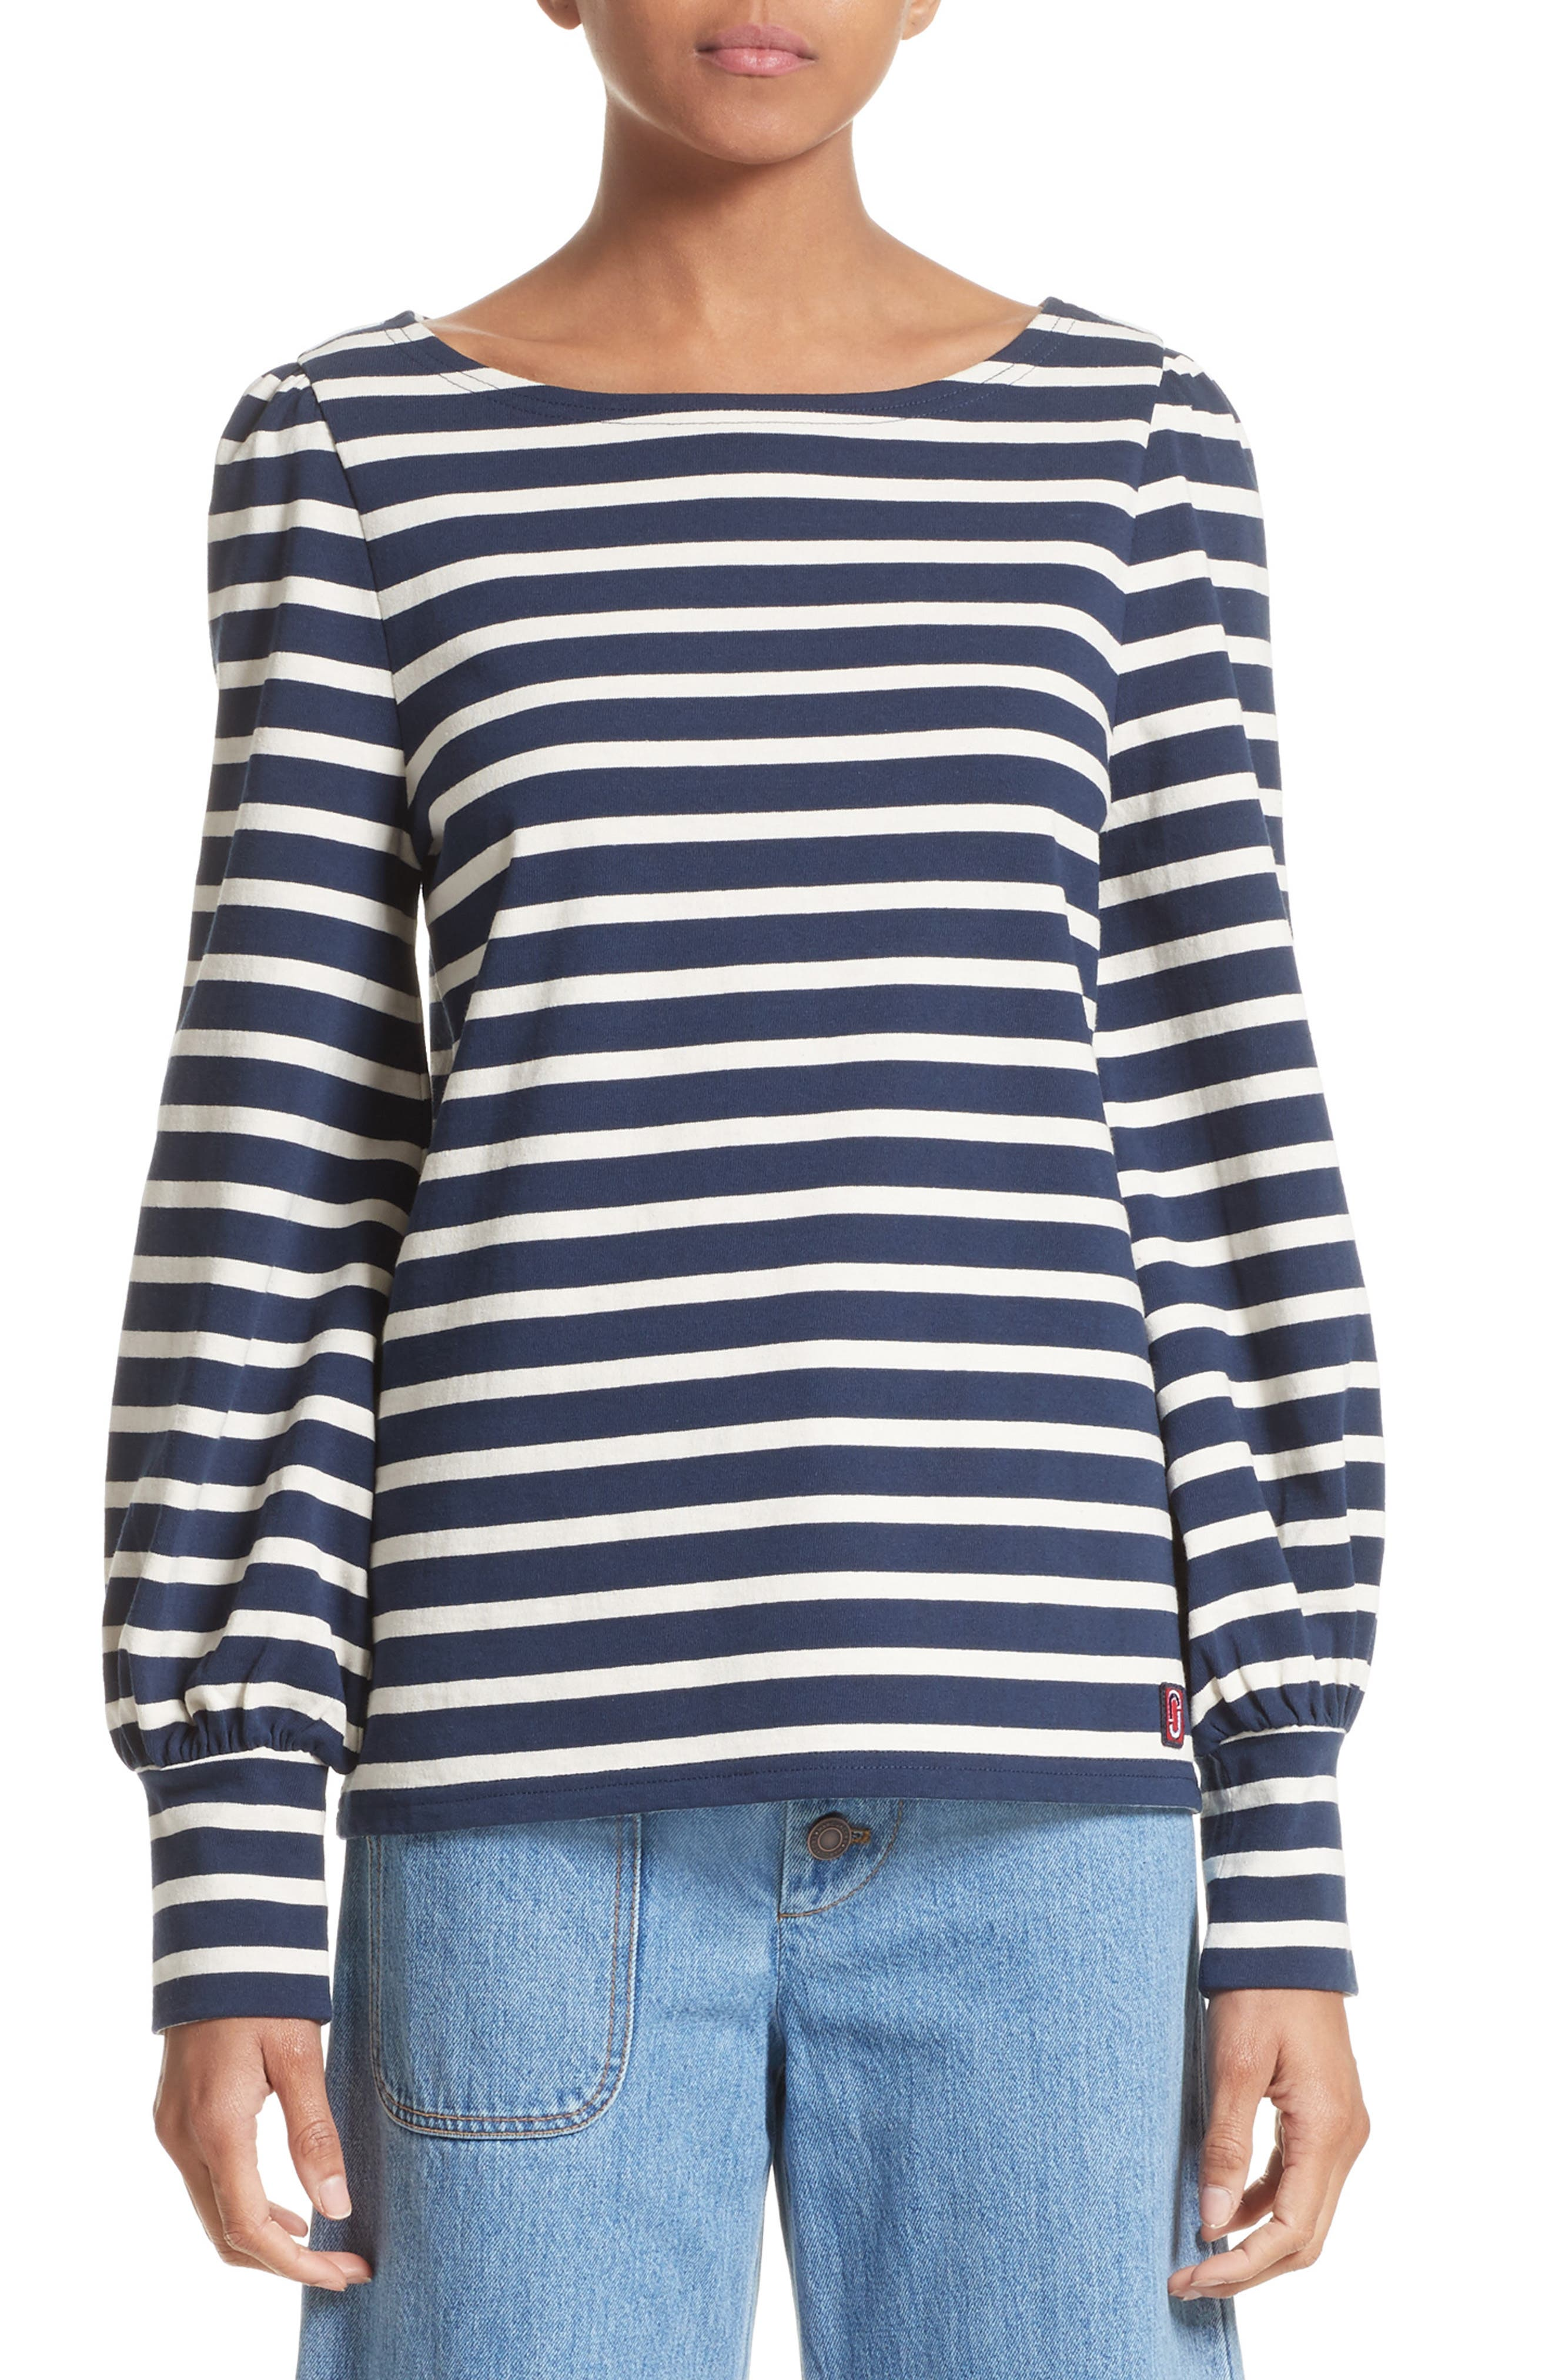 Main Image - MARC JACOBS Reverse Breton Stripe Bell Sleeve Top